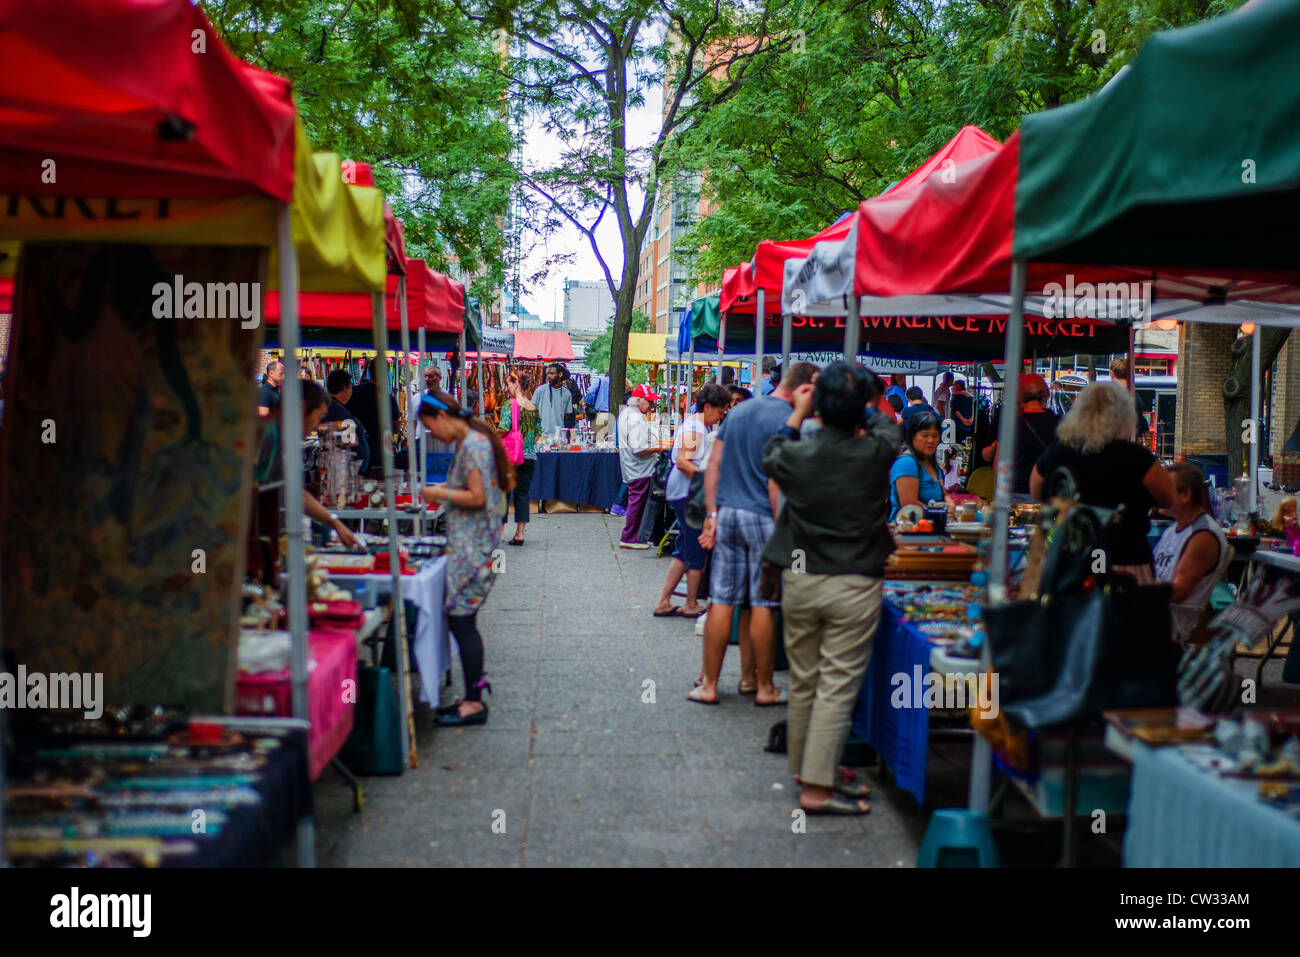 St Lawrence Market antiques fair, Toronto, Canada. - Stock Image